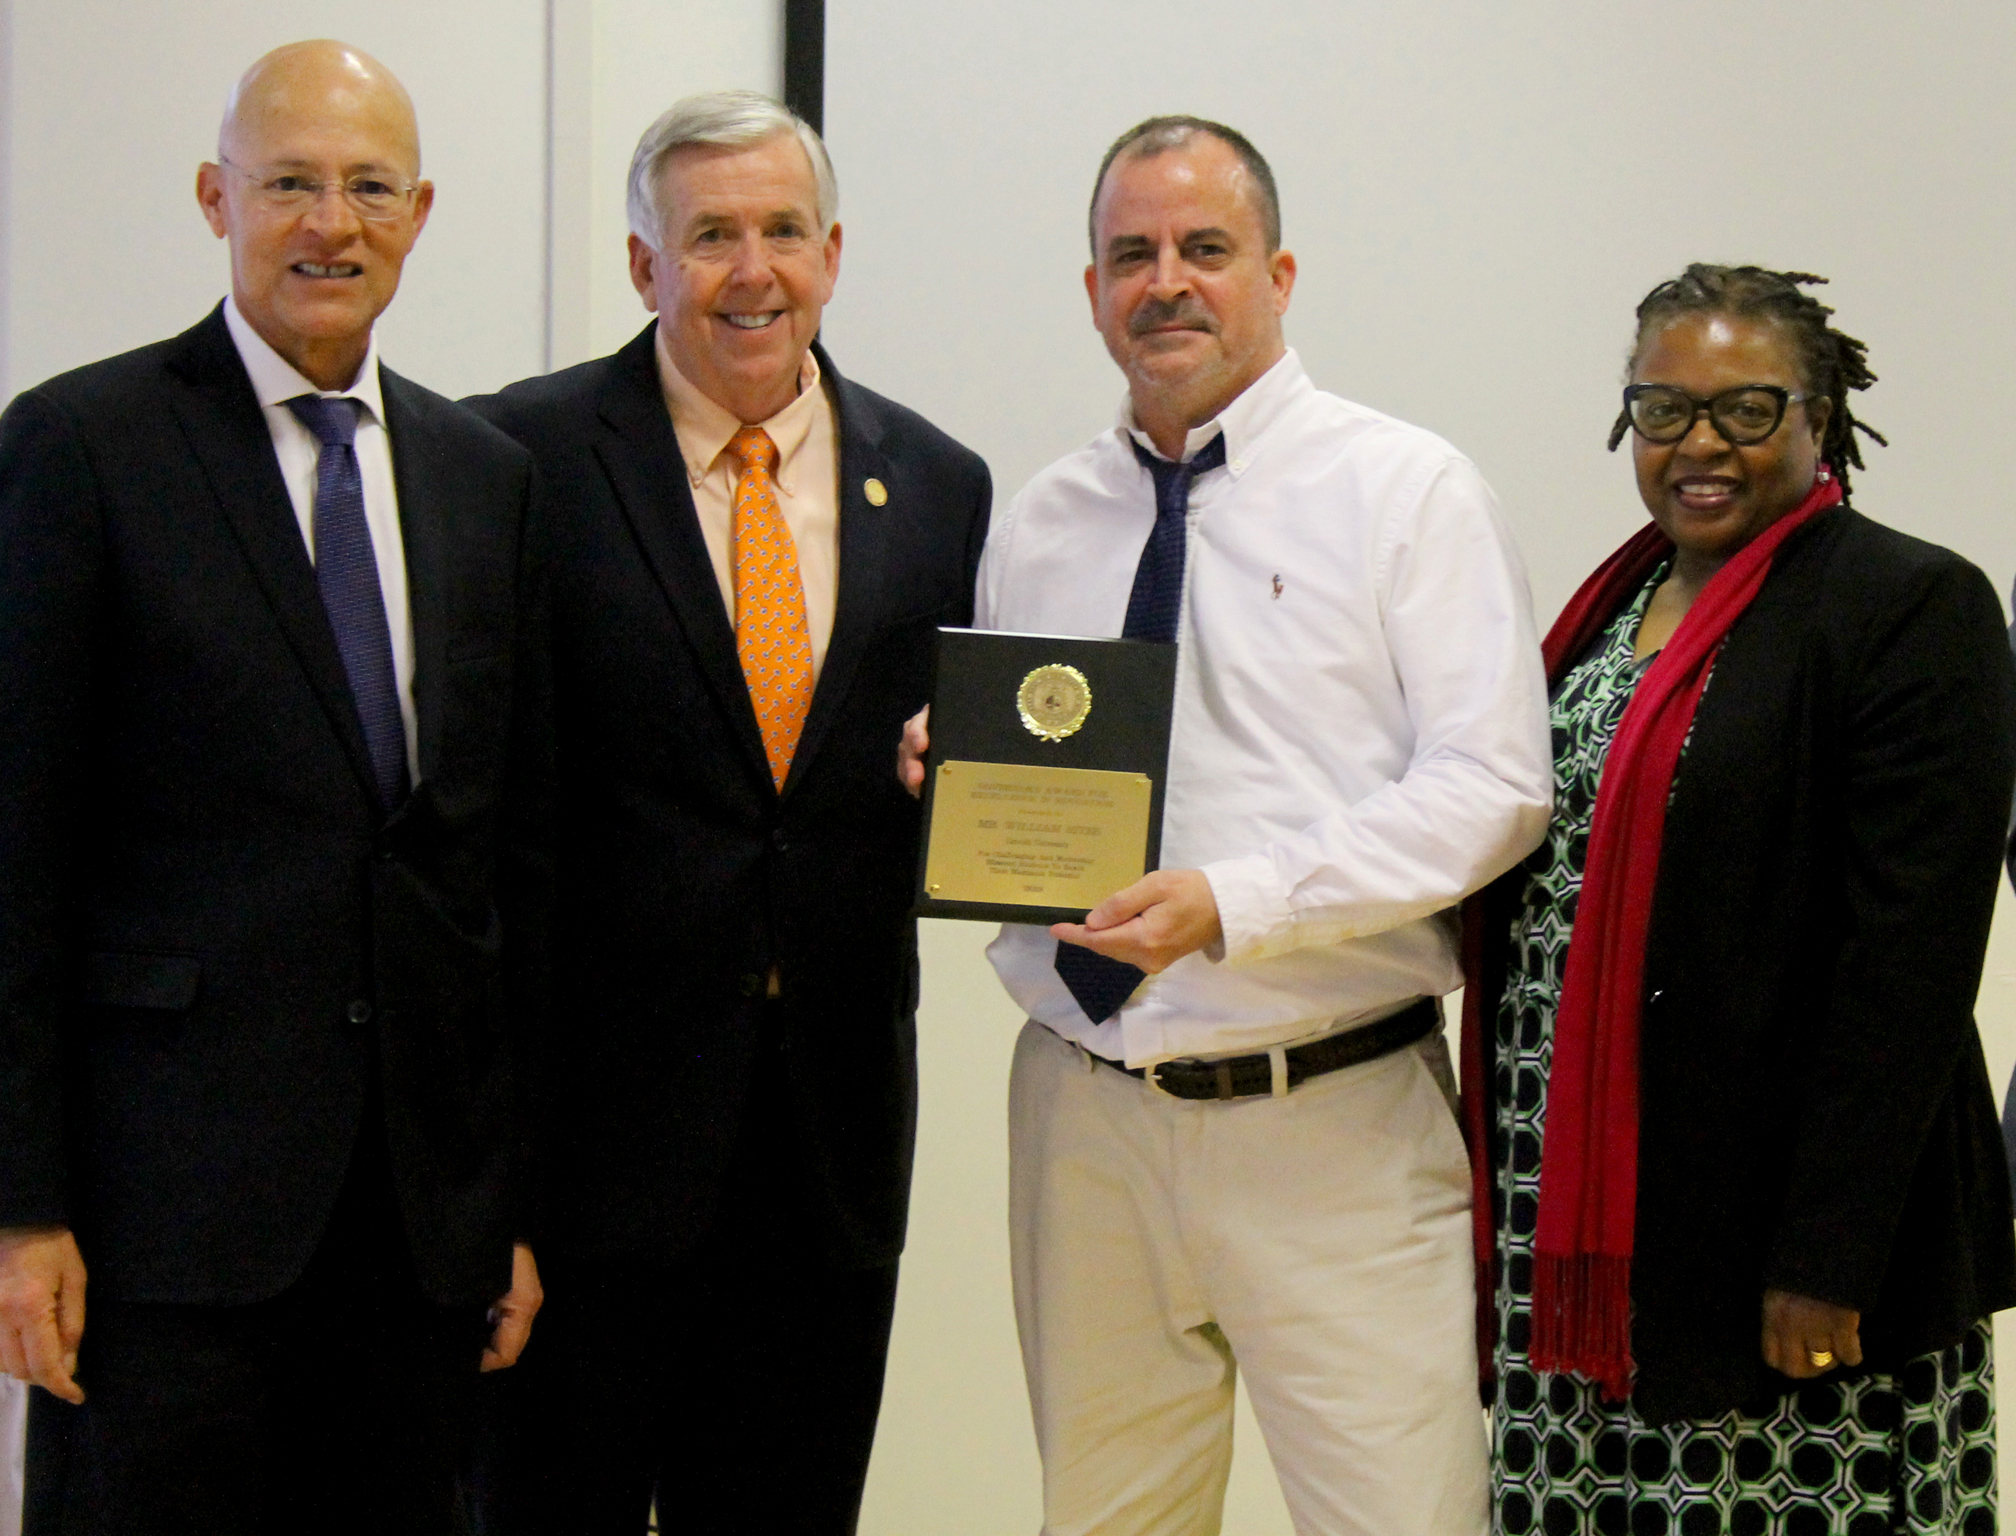 Reynolds School alumnus receives highest award given to public university educators